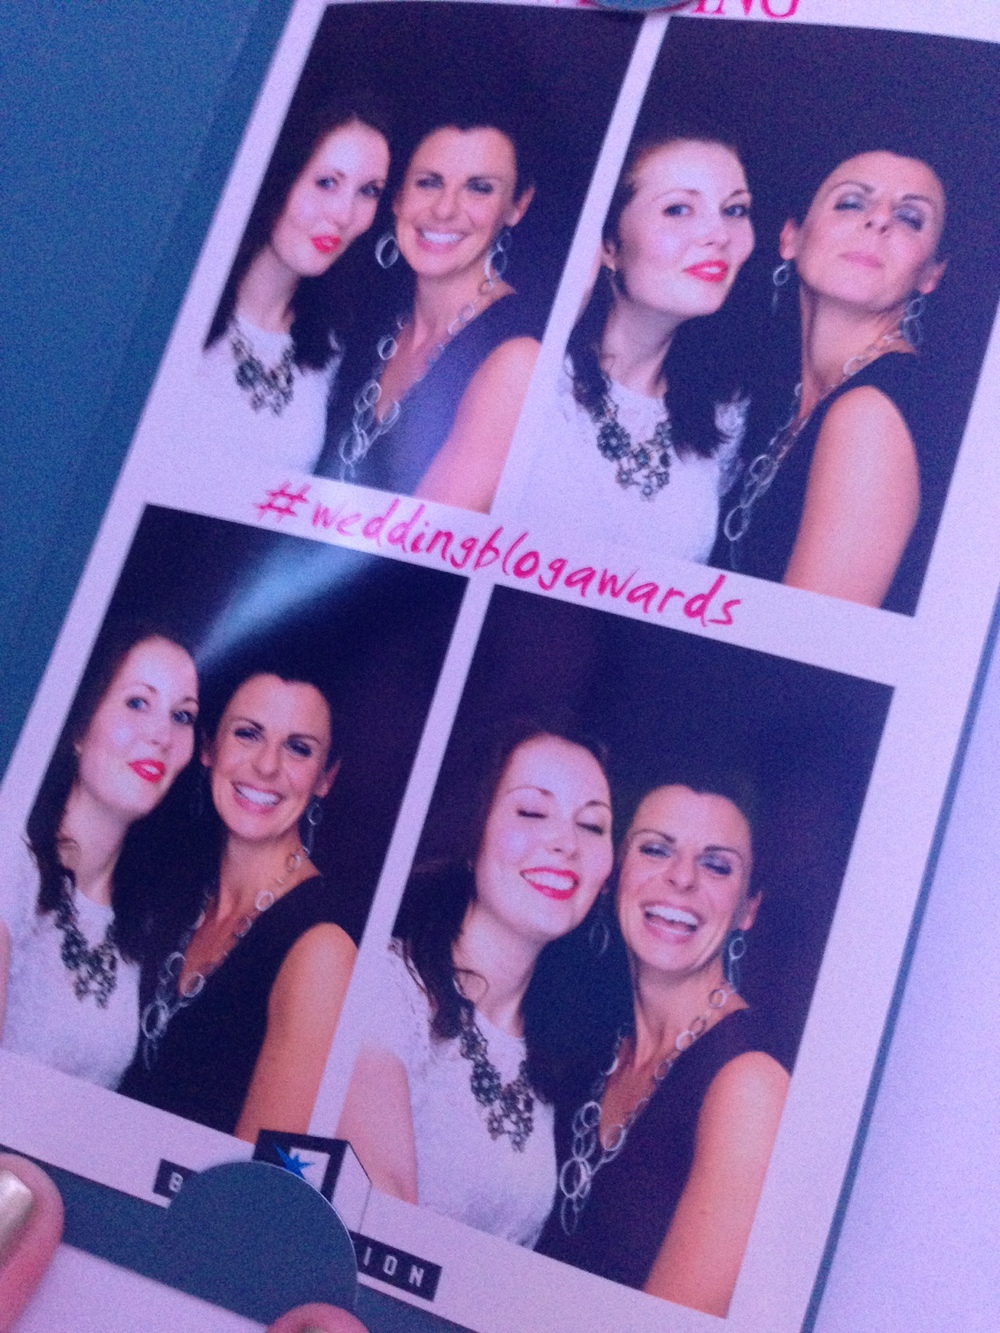 So Caoimhe and I just had to get in on the photobooth action...